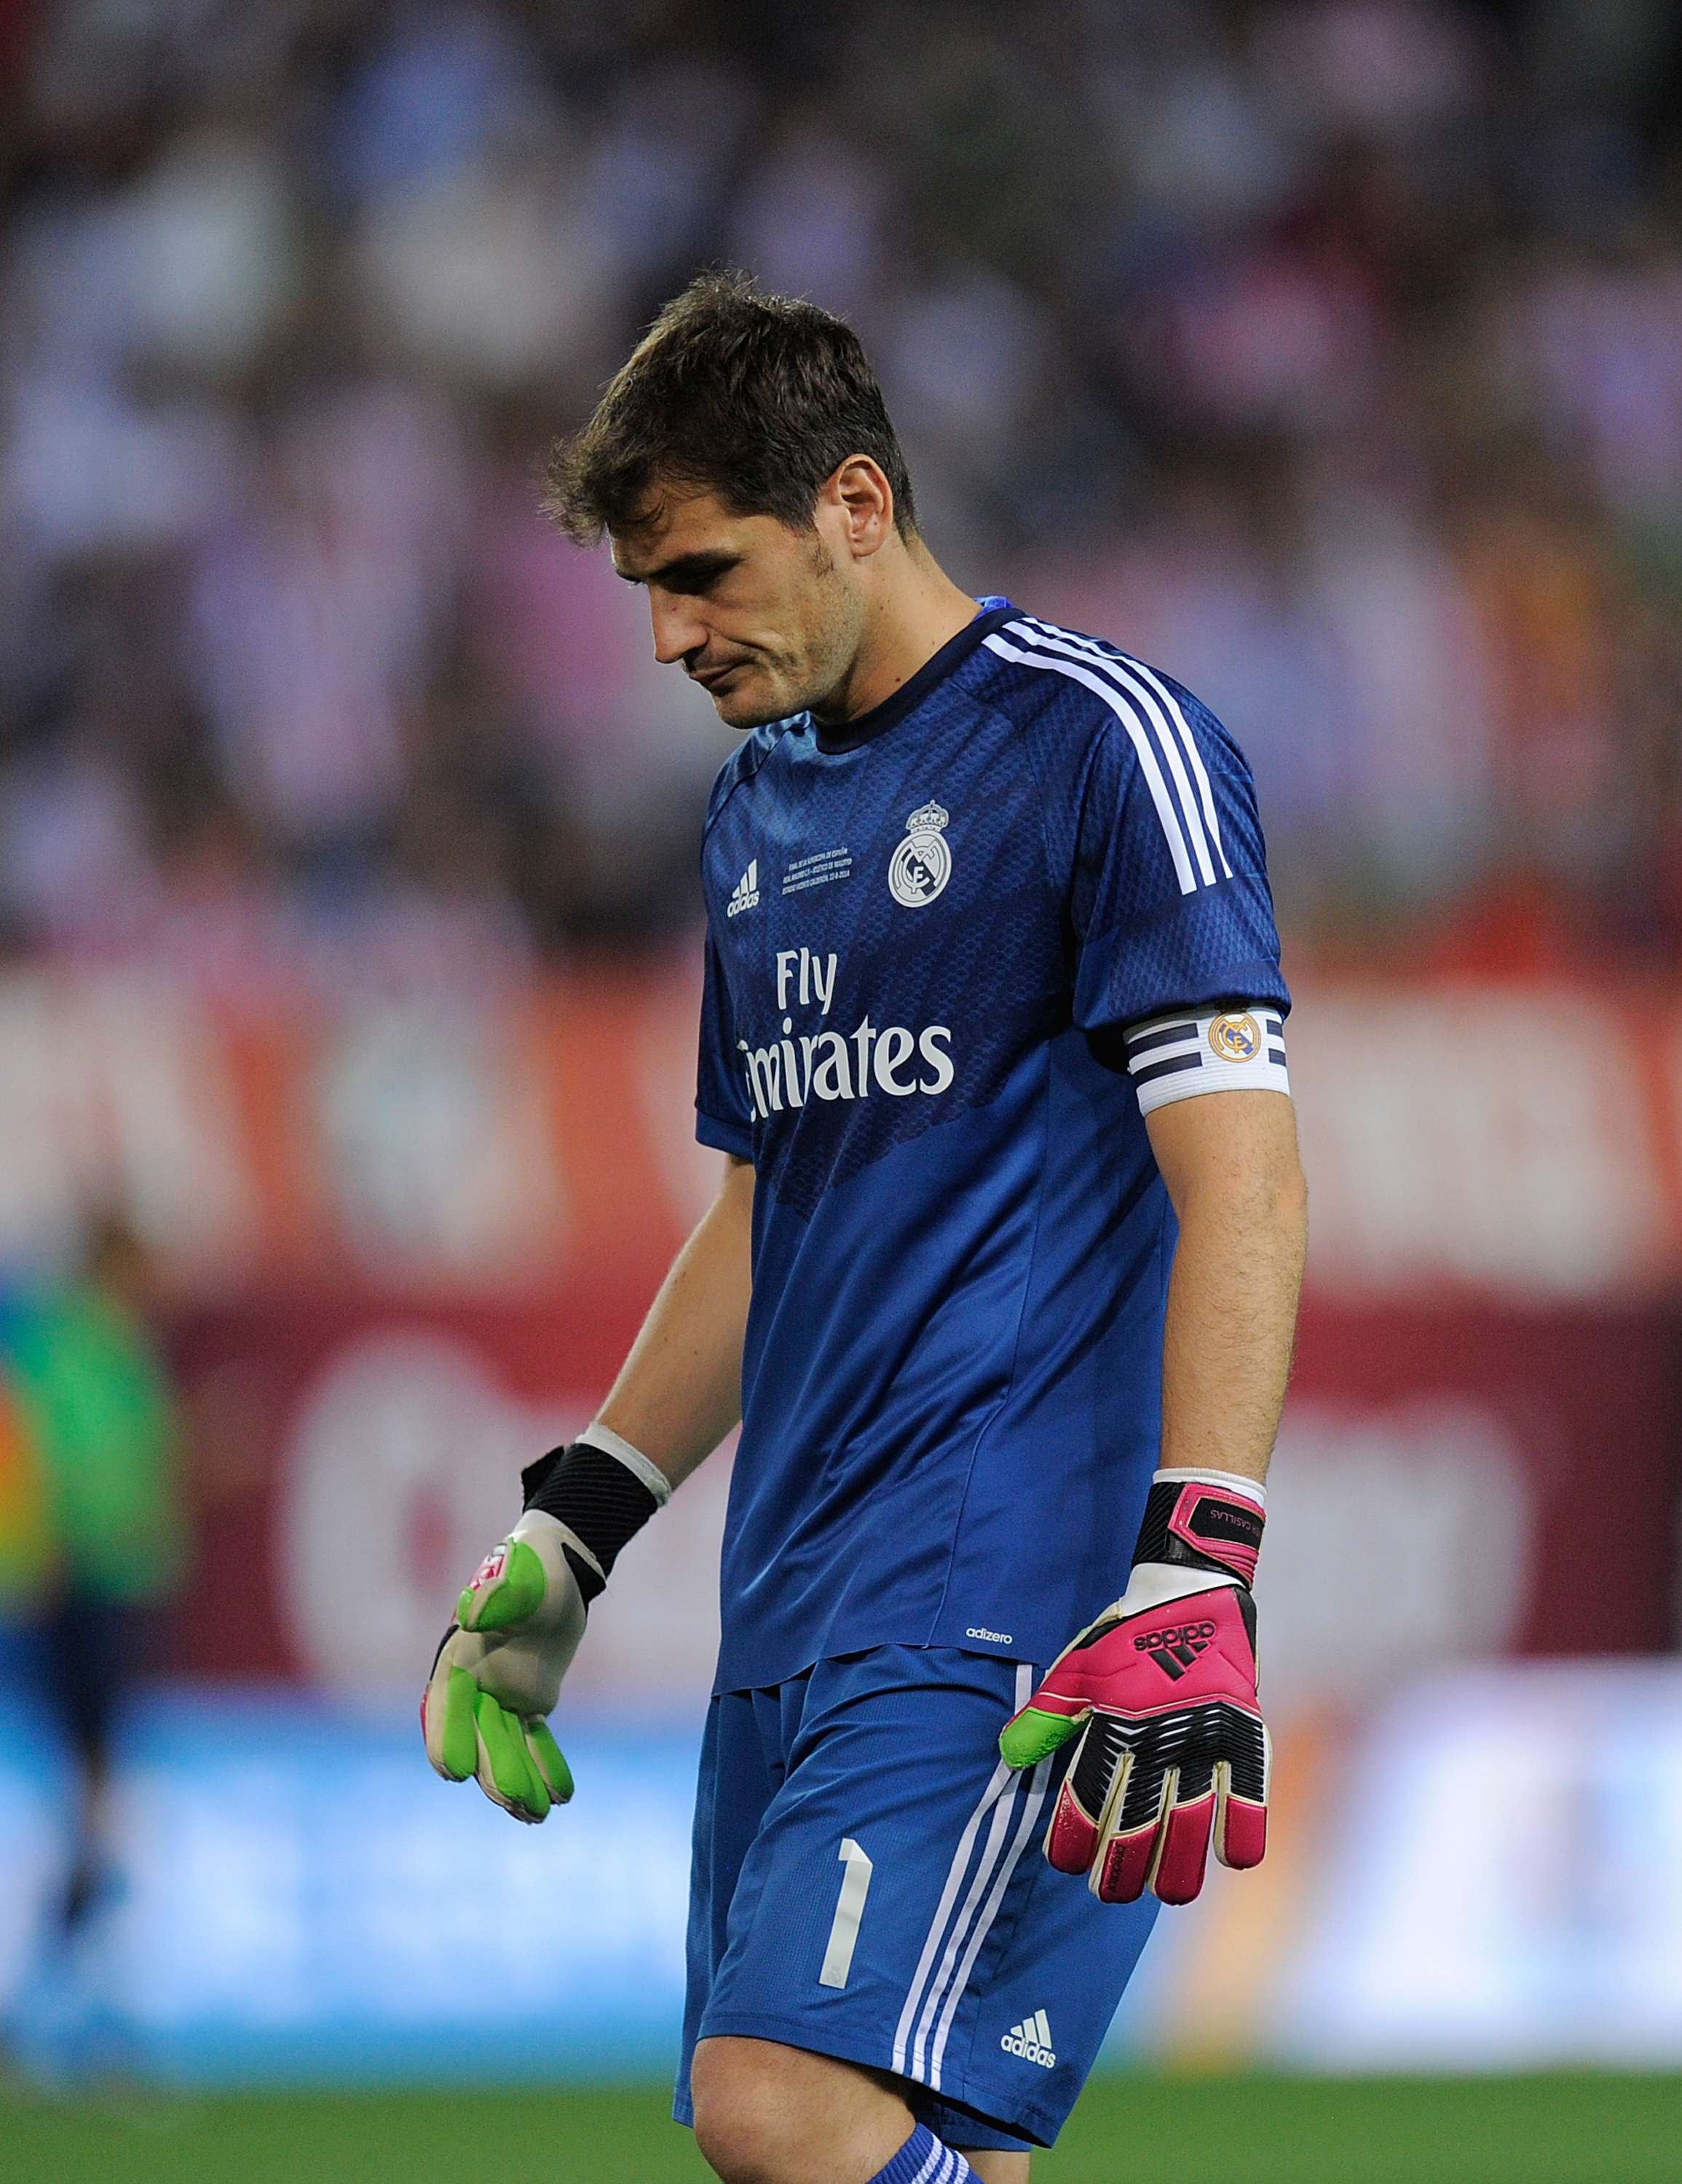 Iker Casillas fue abucheado. Foto: Getty Images